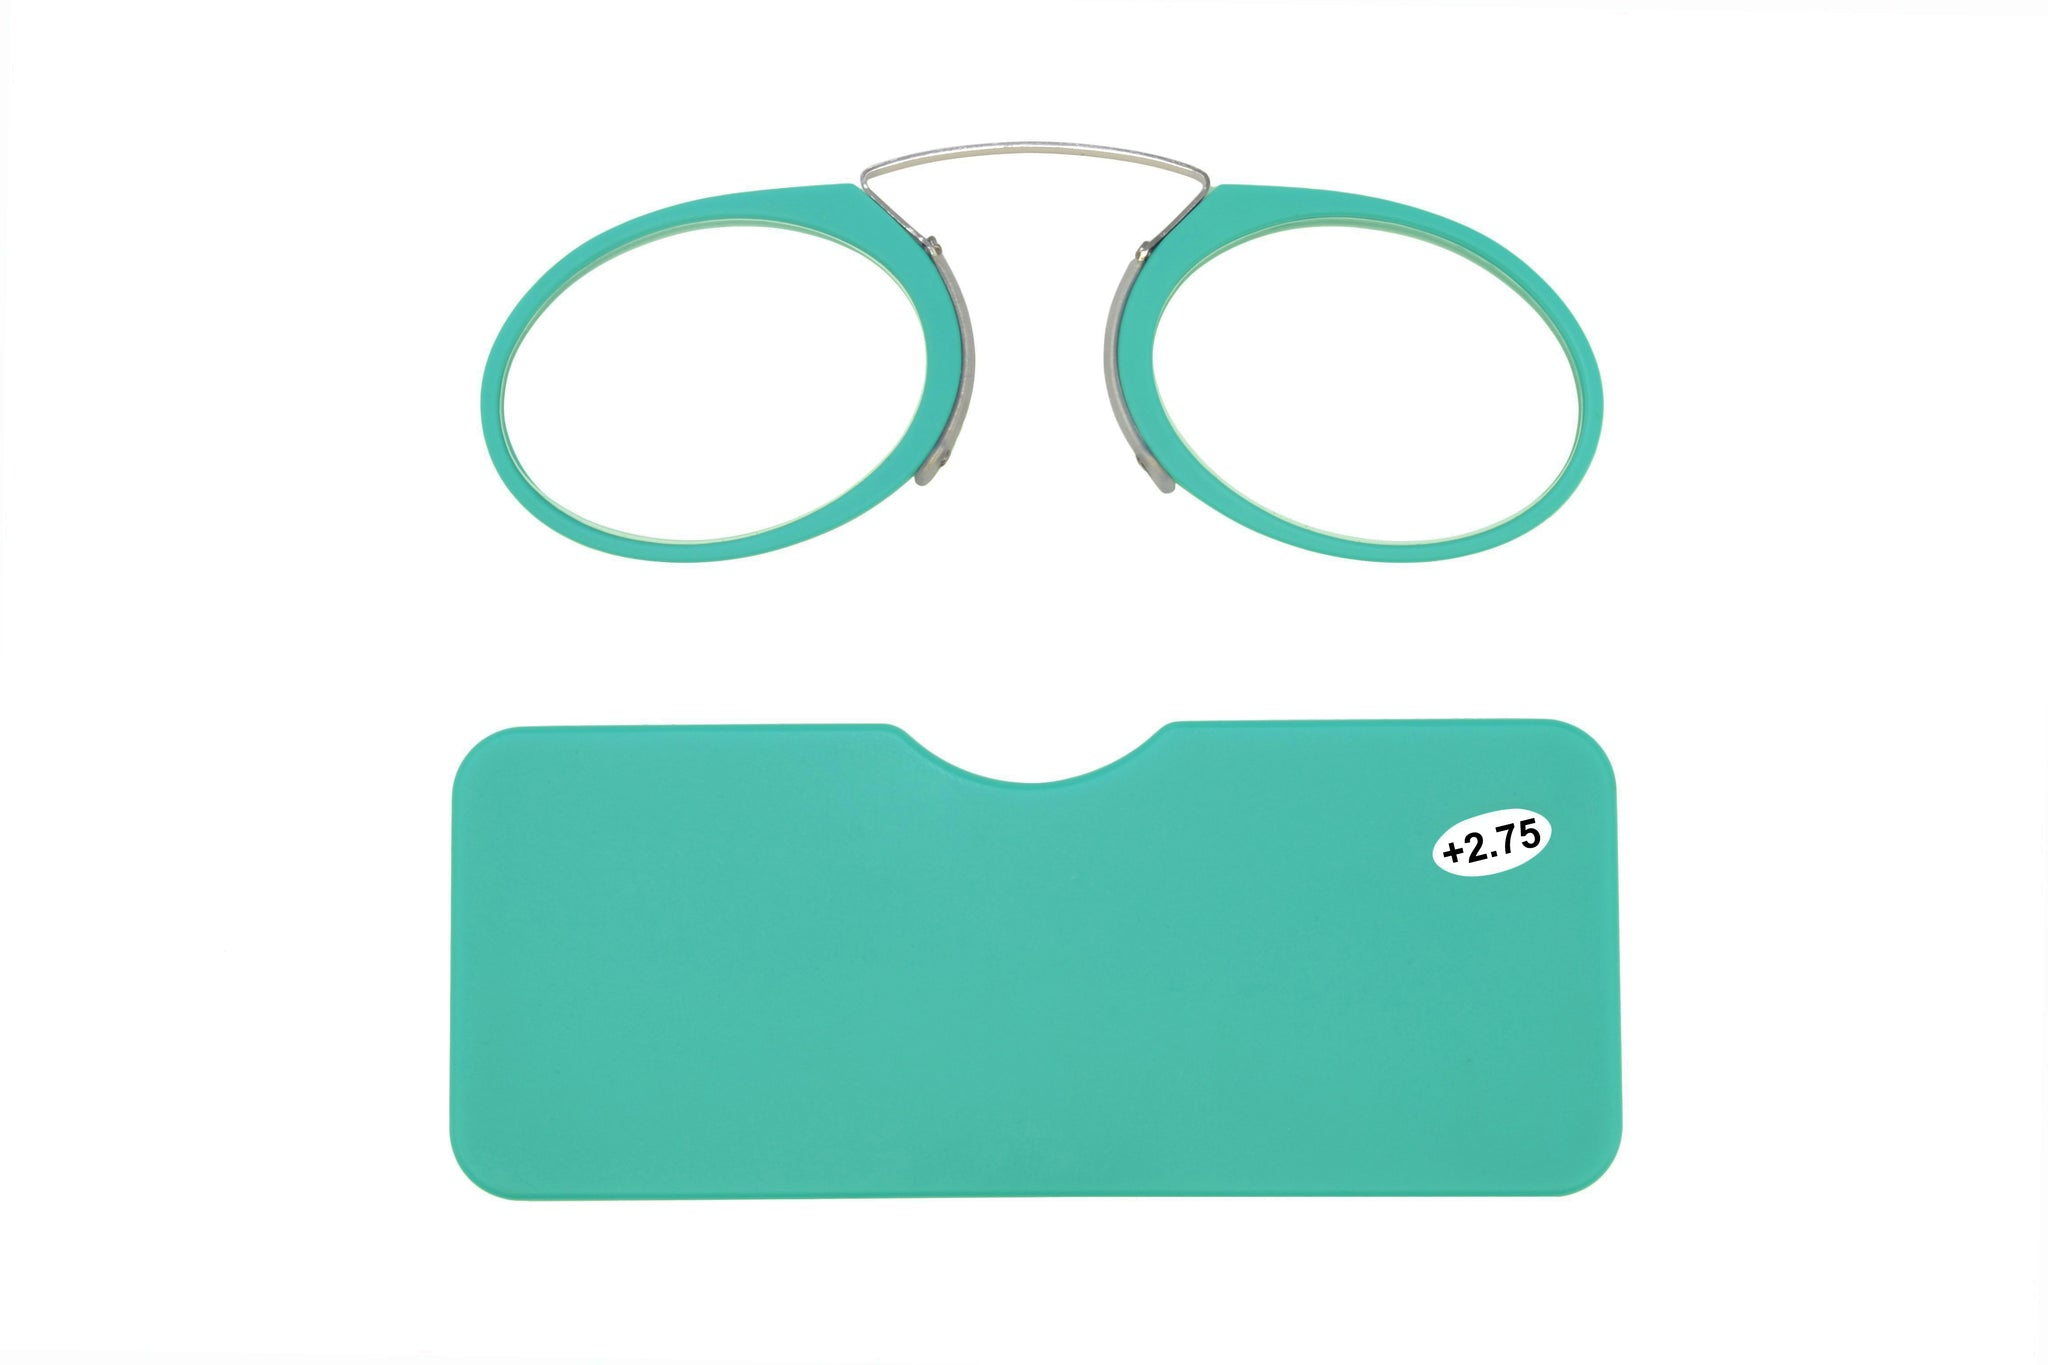 Ultra slim mini reading glasses Pince Nez unisex style Turquoise +2.75 strength.